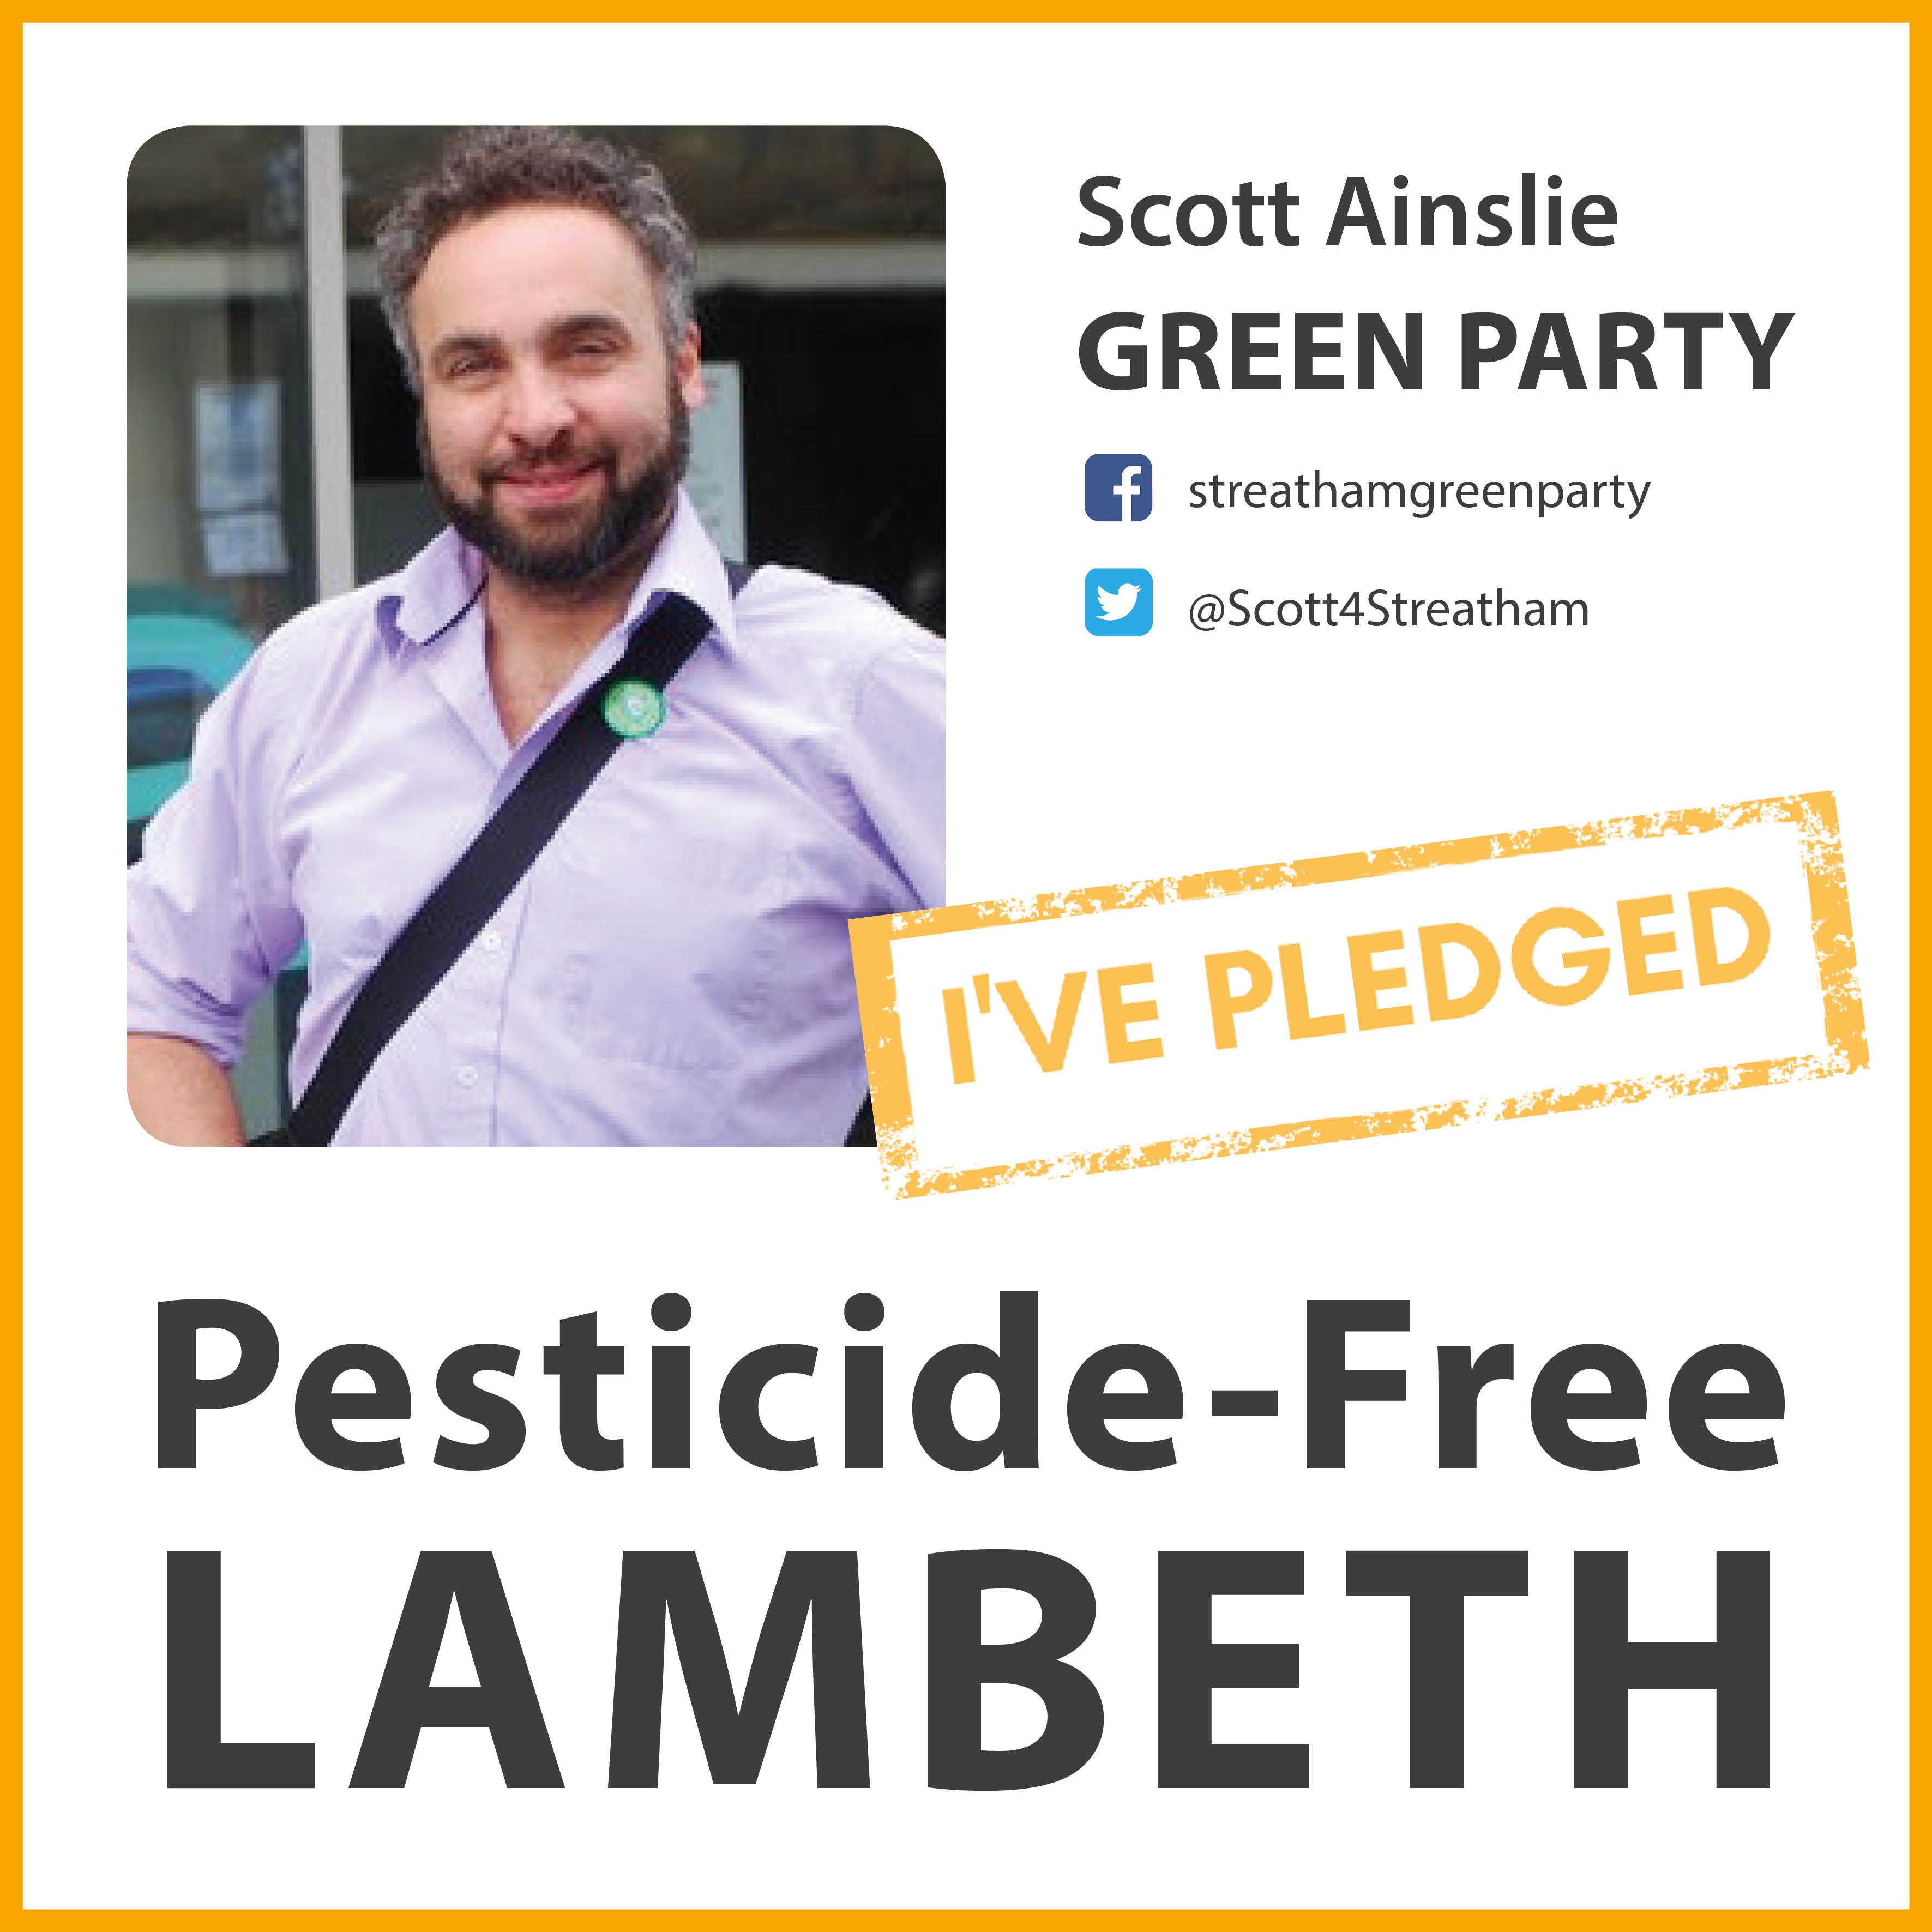 Scott Ainslie has taken the pesticide-free pledge in Lambeth